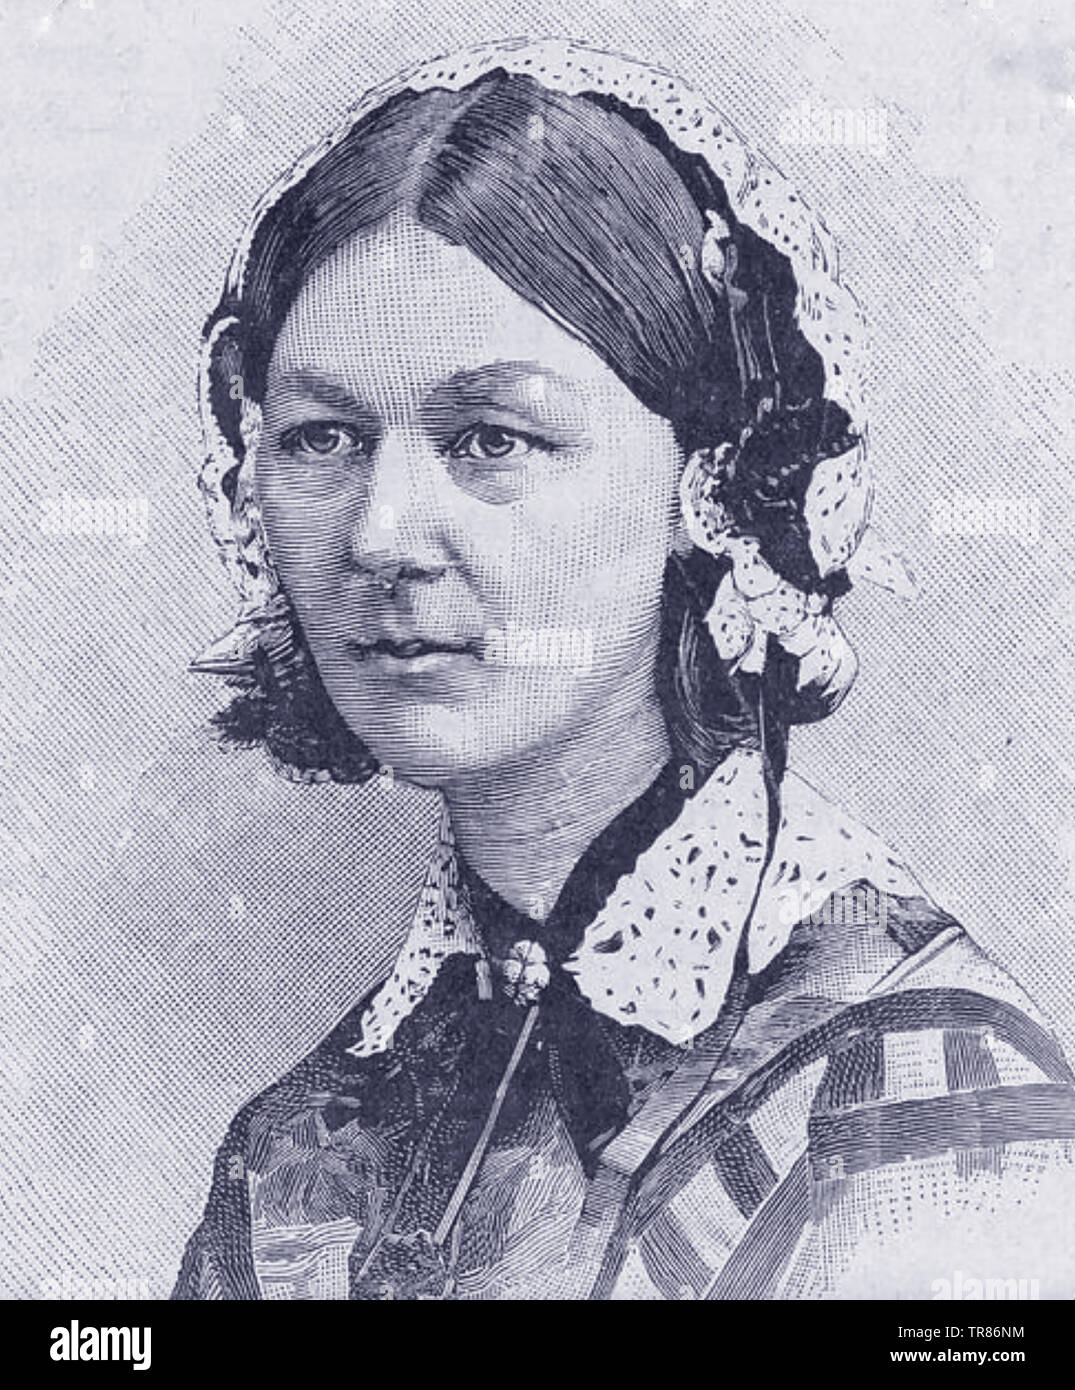 FLORENCE NIGHTINGALE (1820-1910) English nurse and social reformer about 1860 - Stock Image